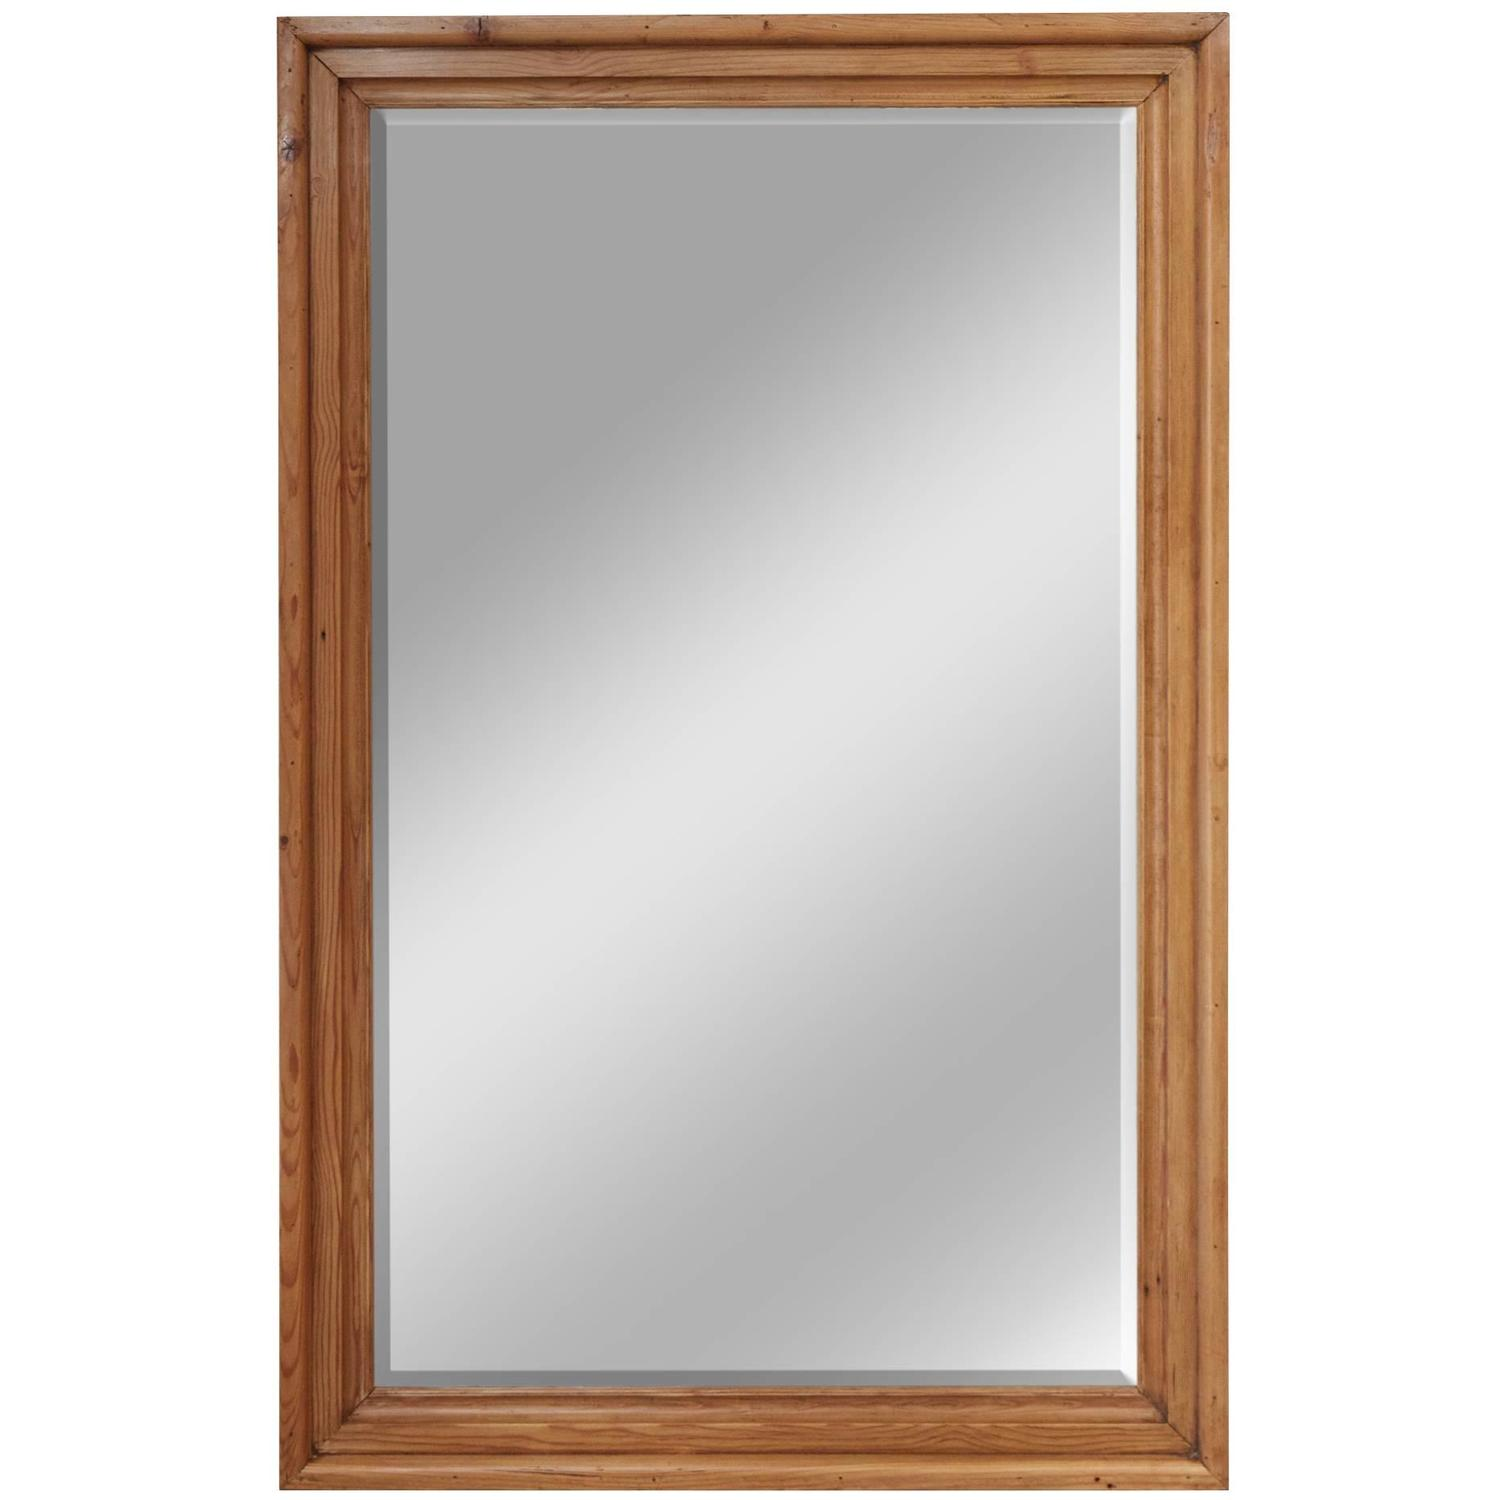 Large english pine frame with mirror for sale at 1stdibs for Large framed mirrors for sale